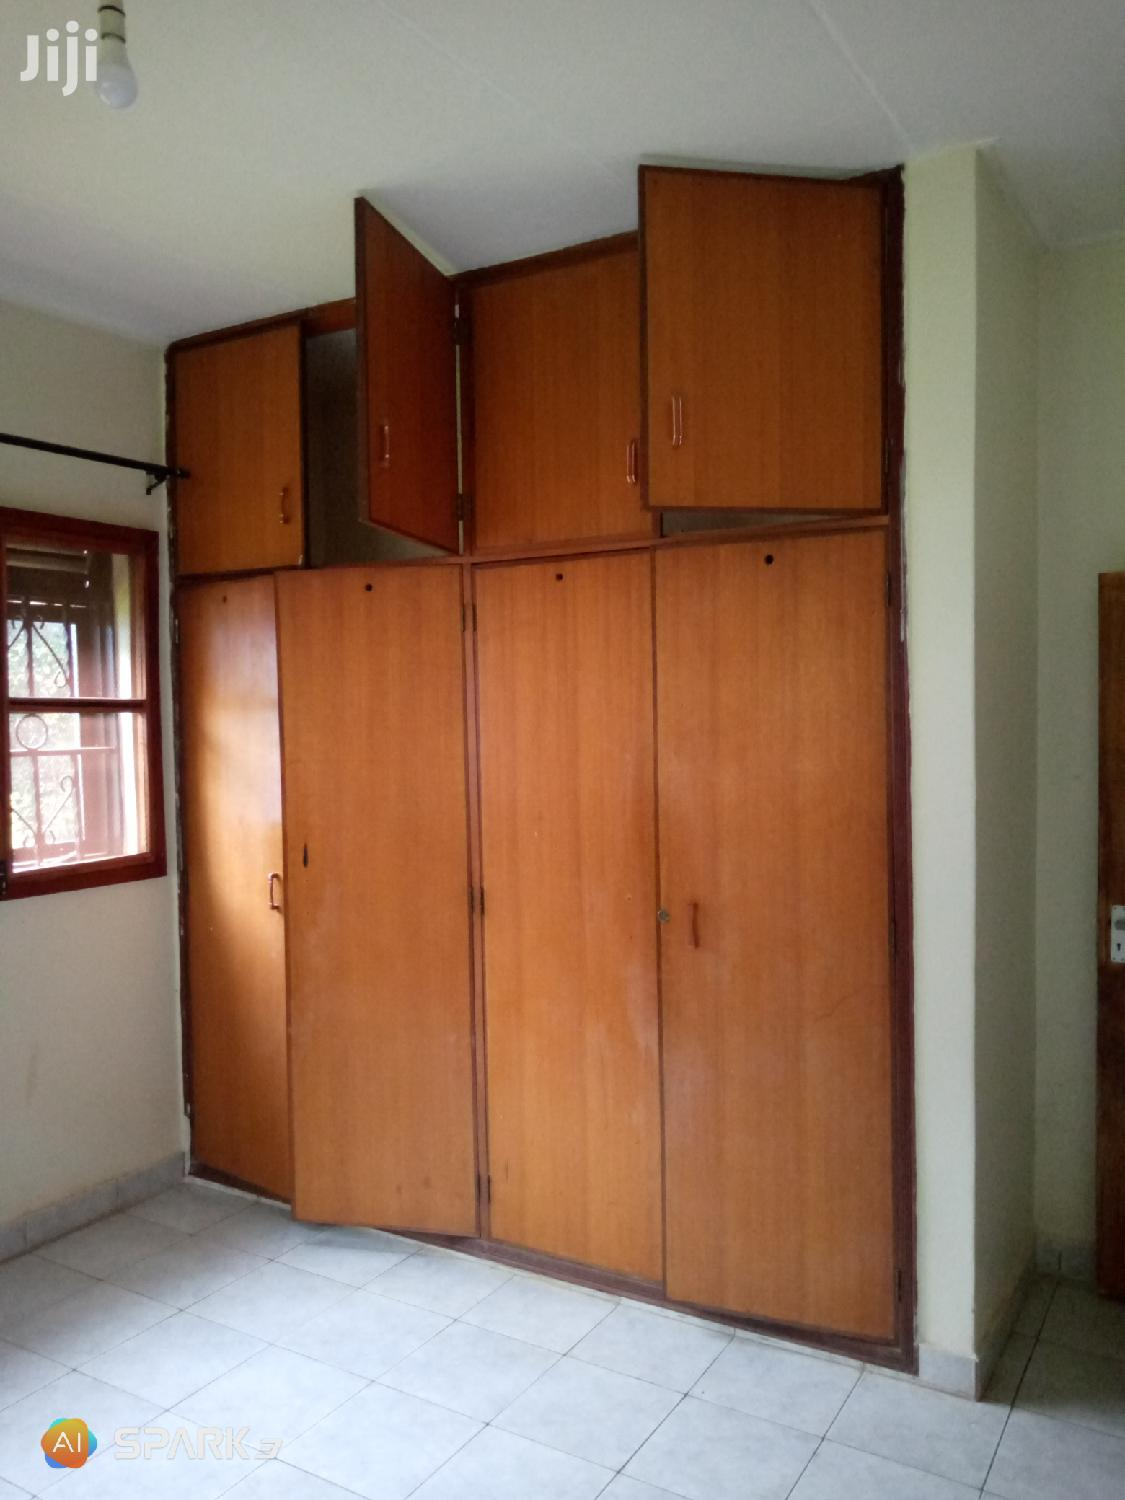 Ntinda Three Bedrooms for Rent | Houses & Apartments For Rent for sale in Kampala, Central Region, Uganda